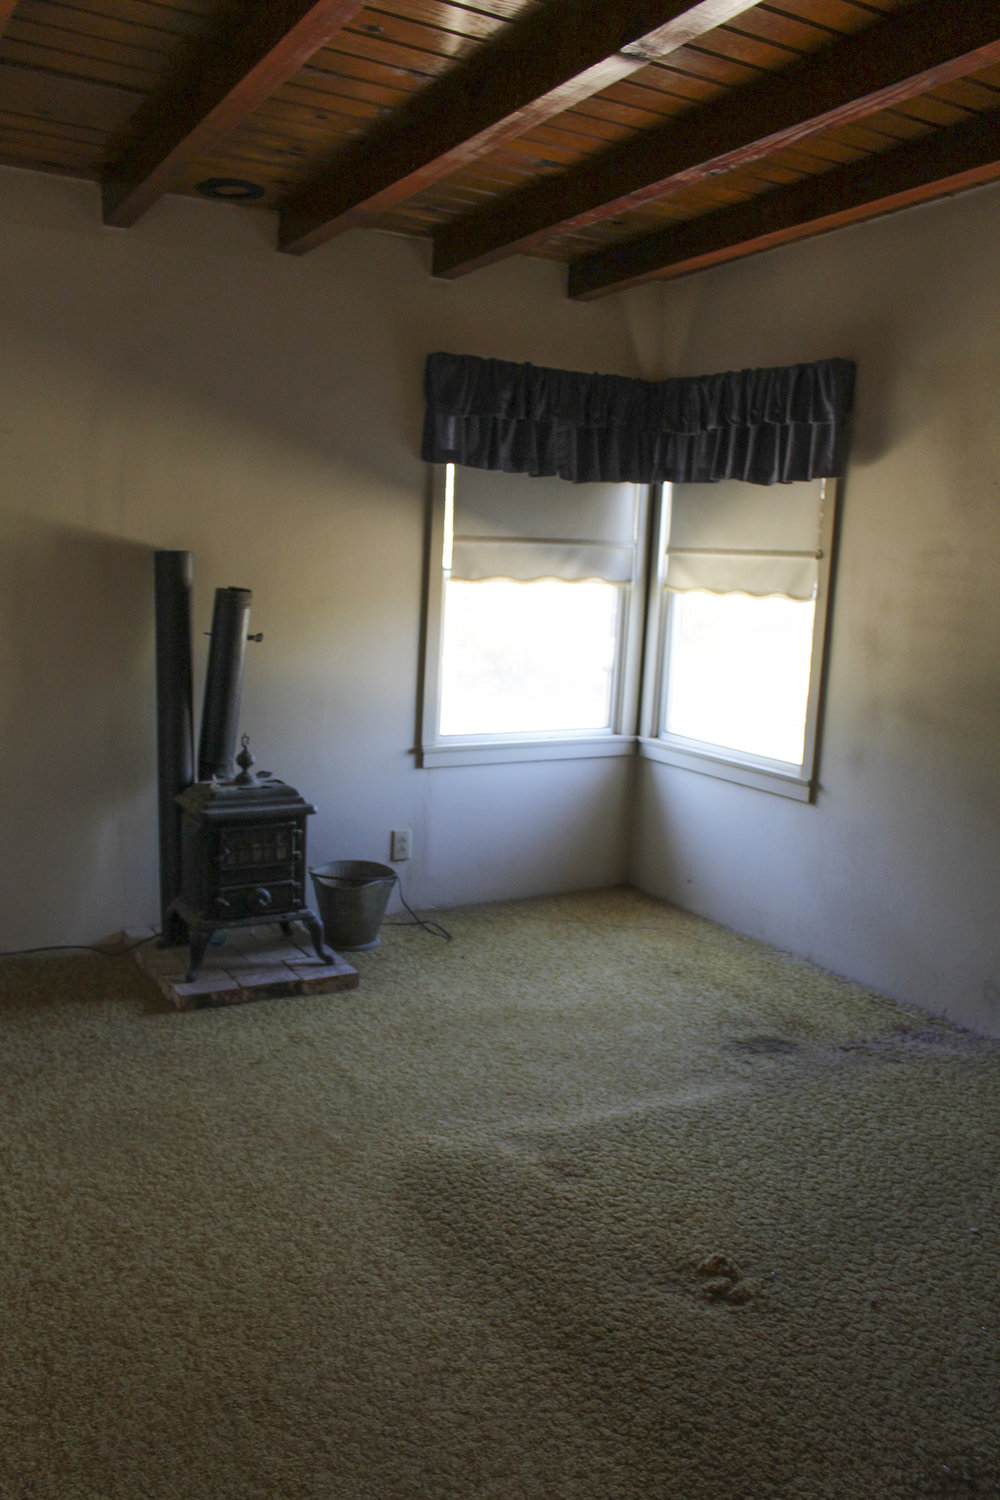 east bedroom 2.jpg